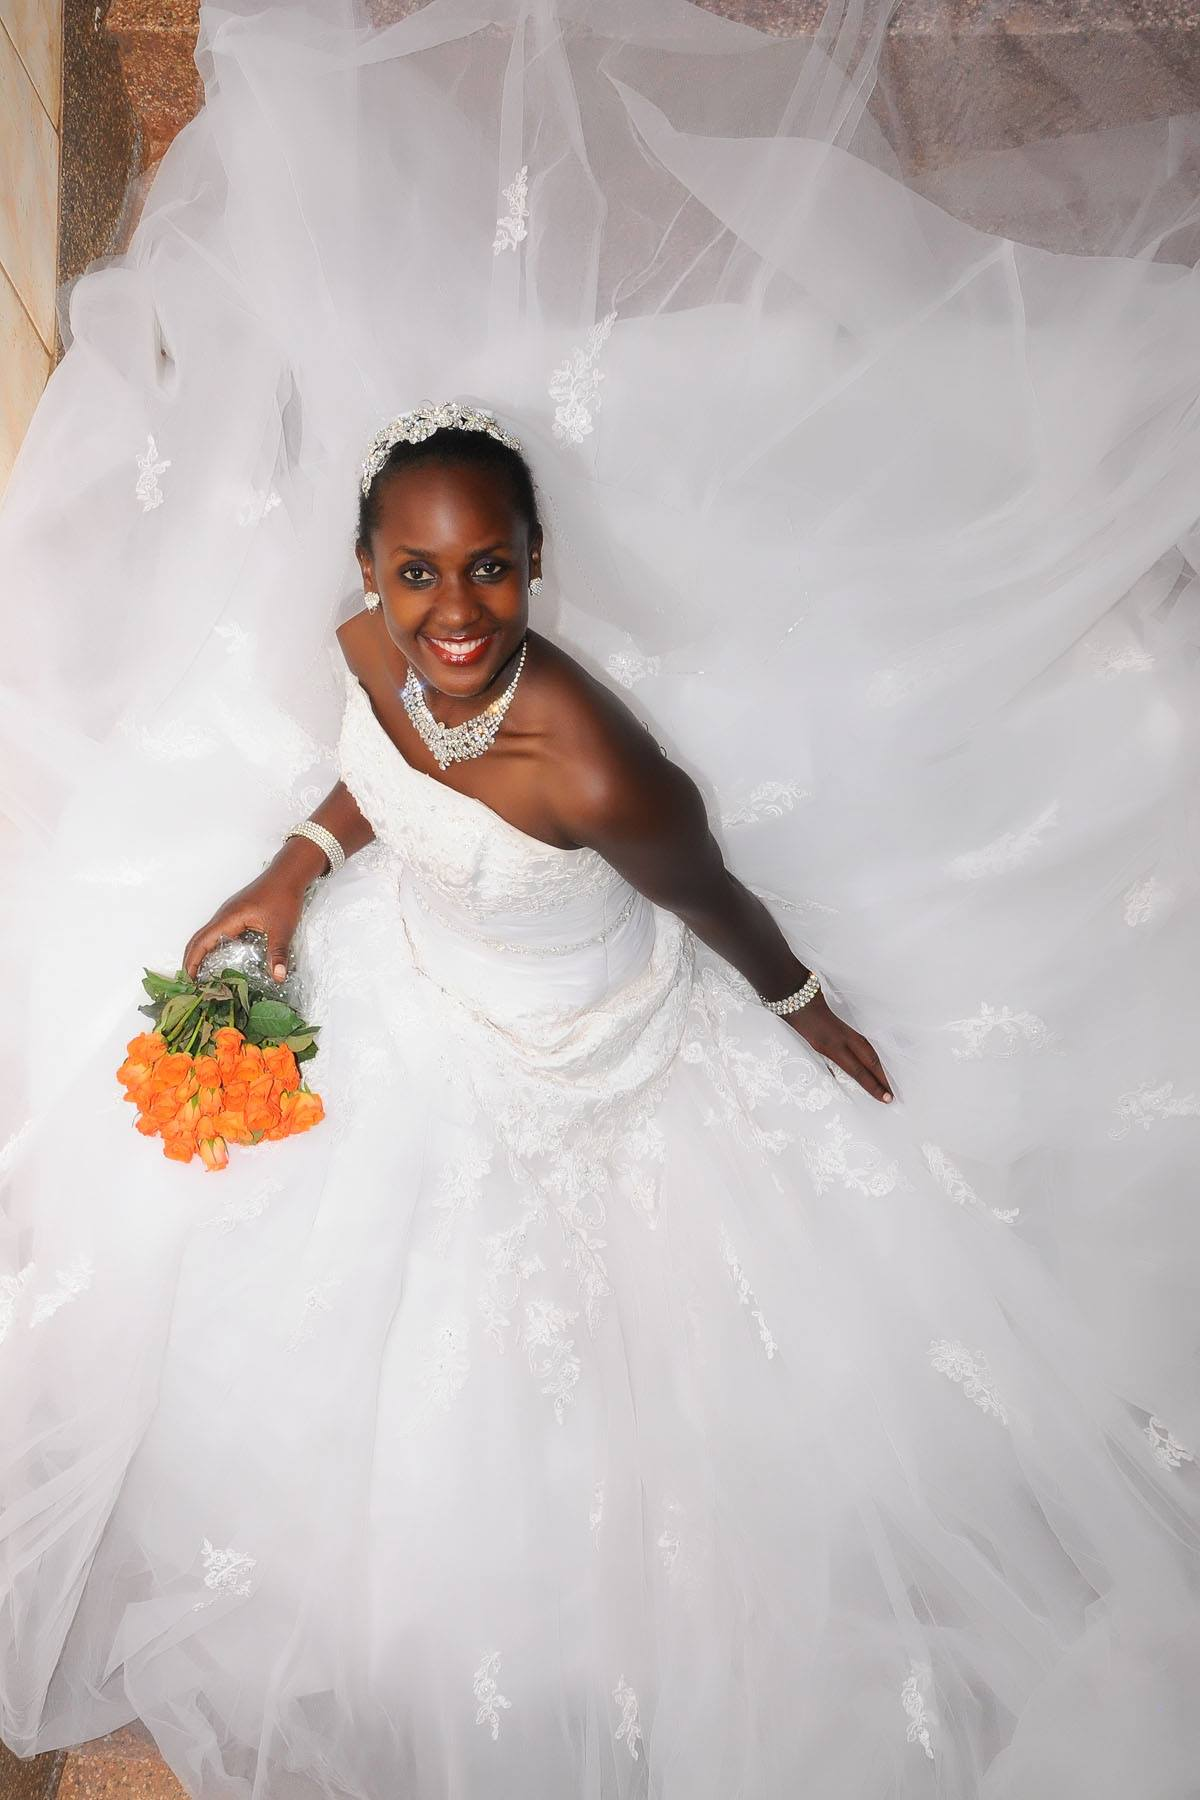 Bridal Smiles from Judy's Bridals